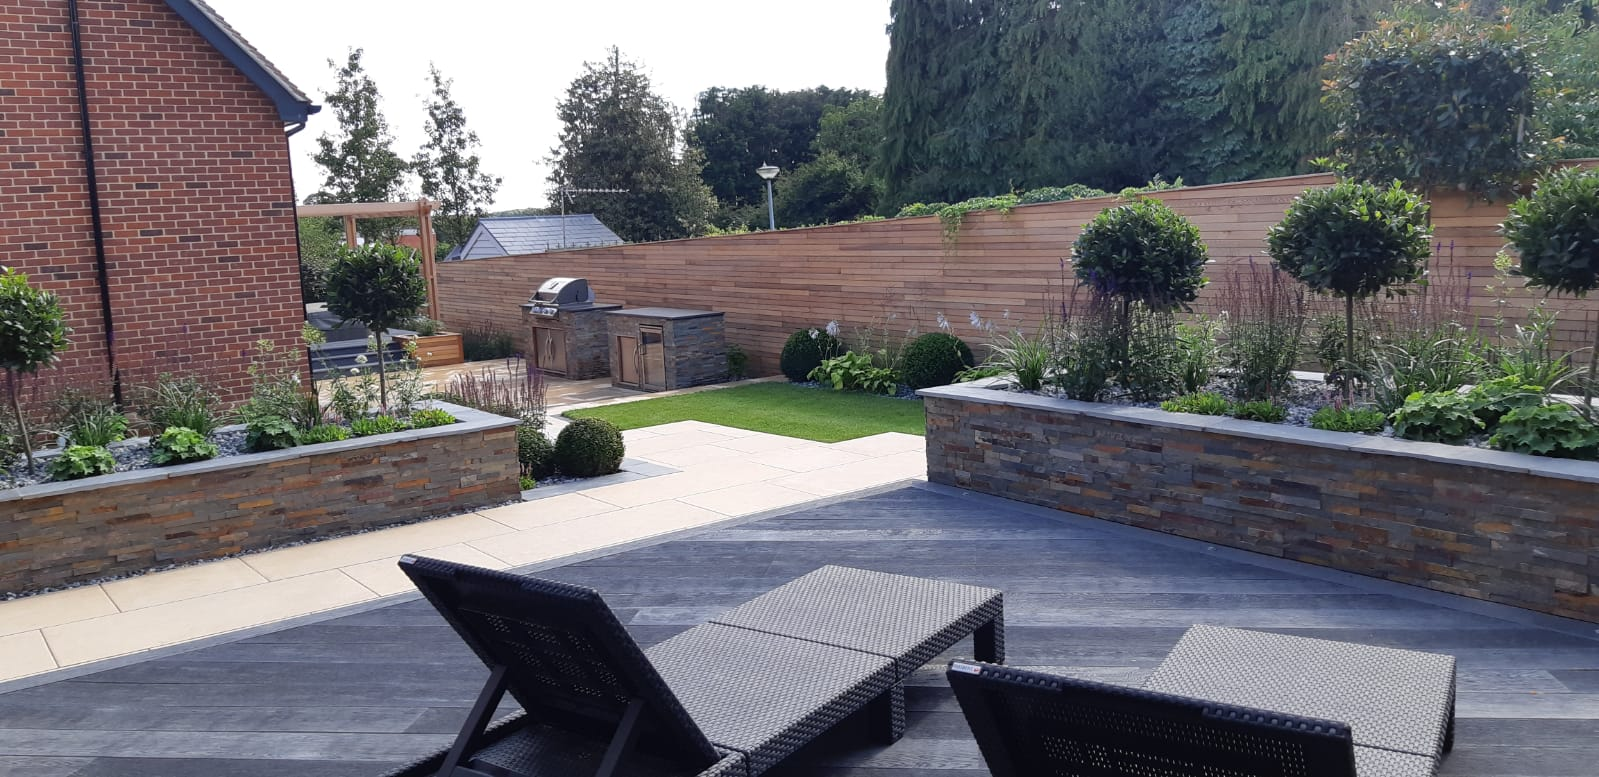 Millboard composite decking and raised beds